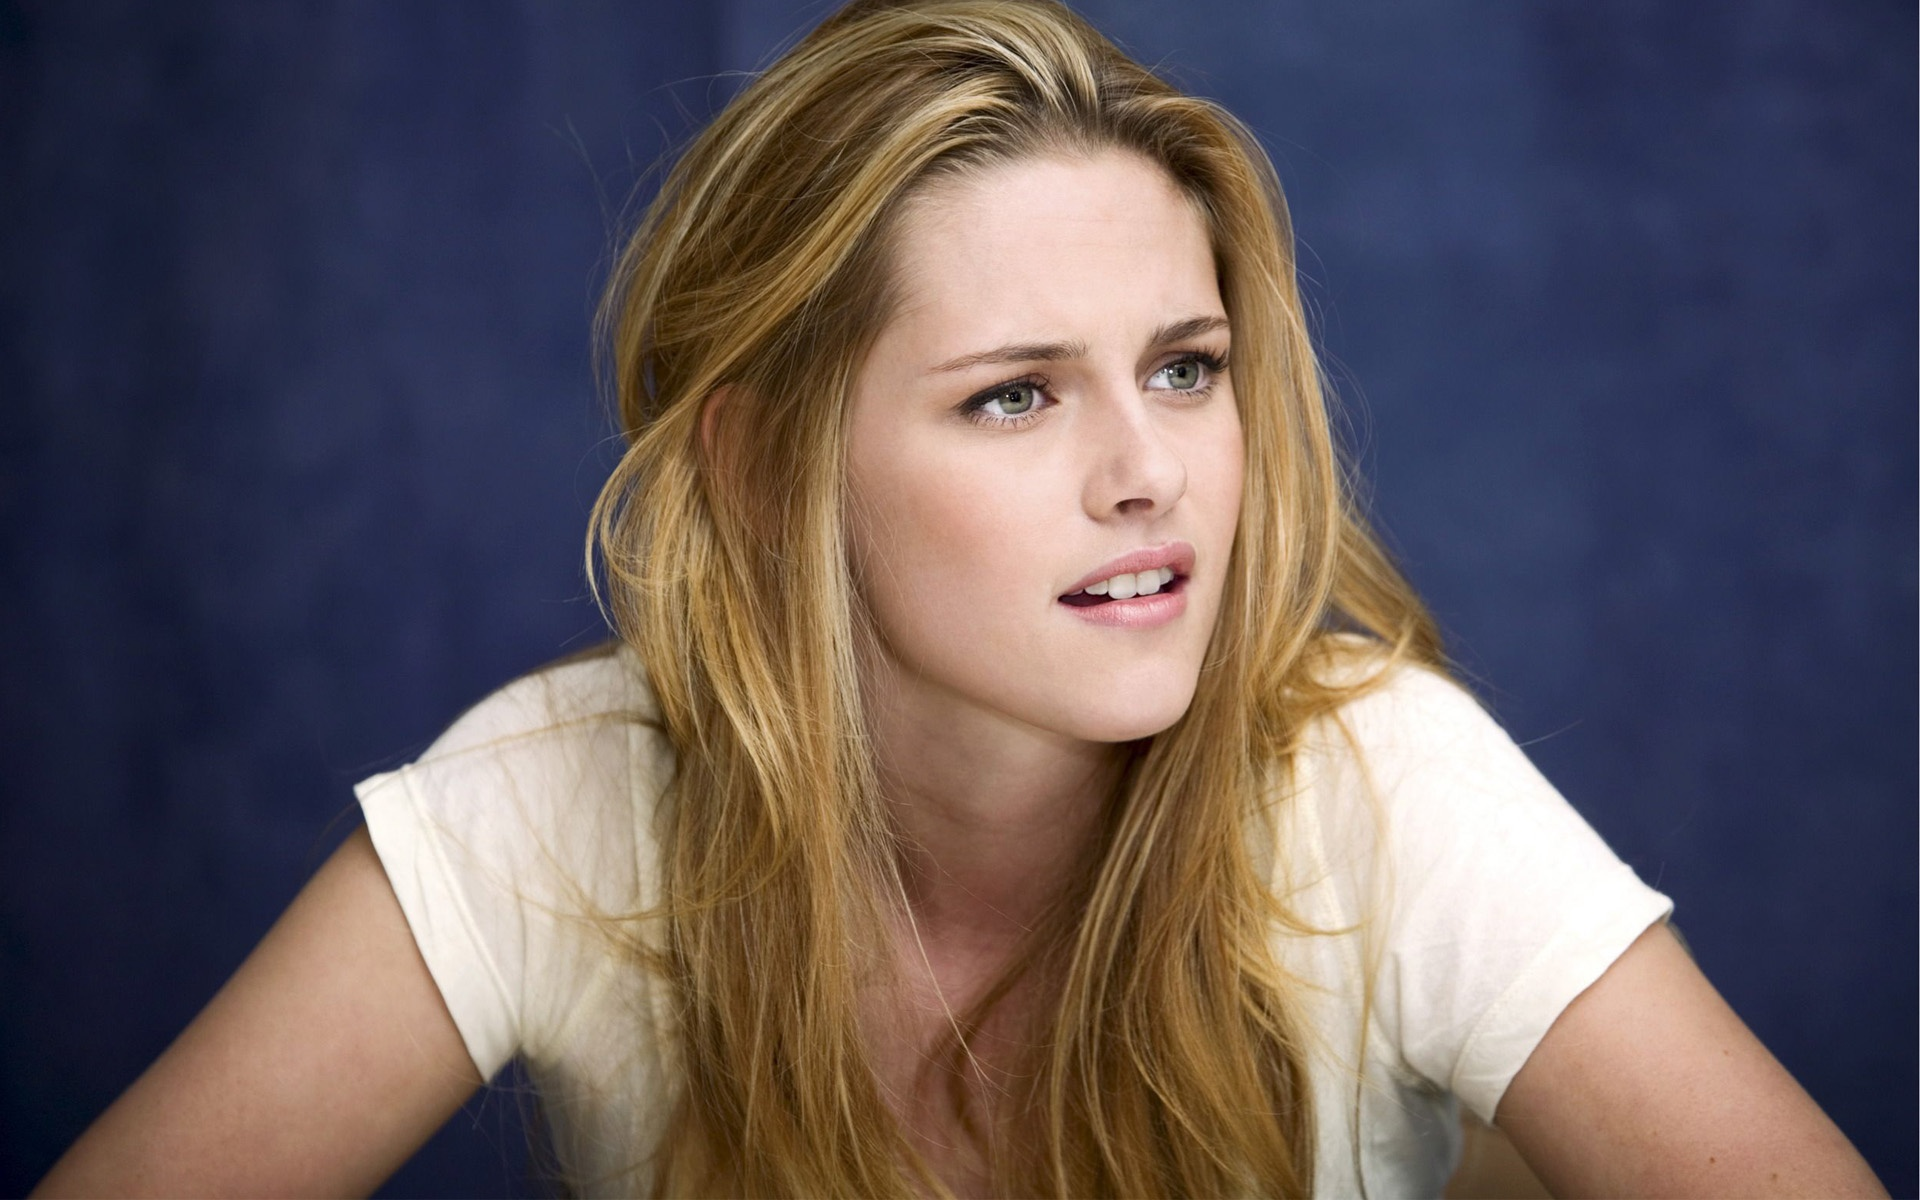 kristen stewart wallpapers hd A22